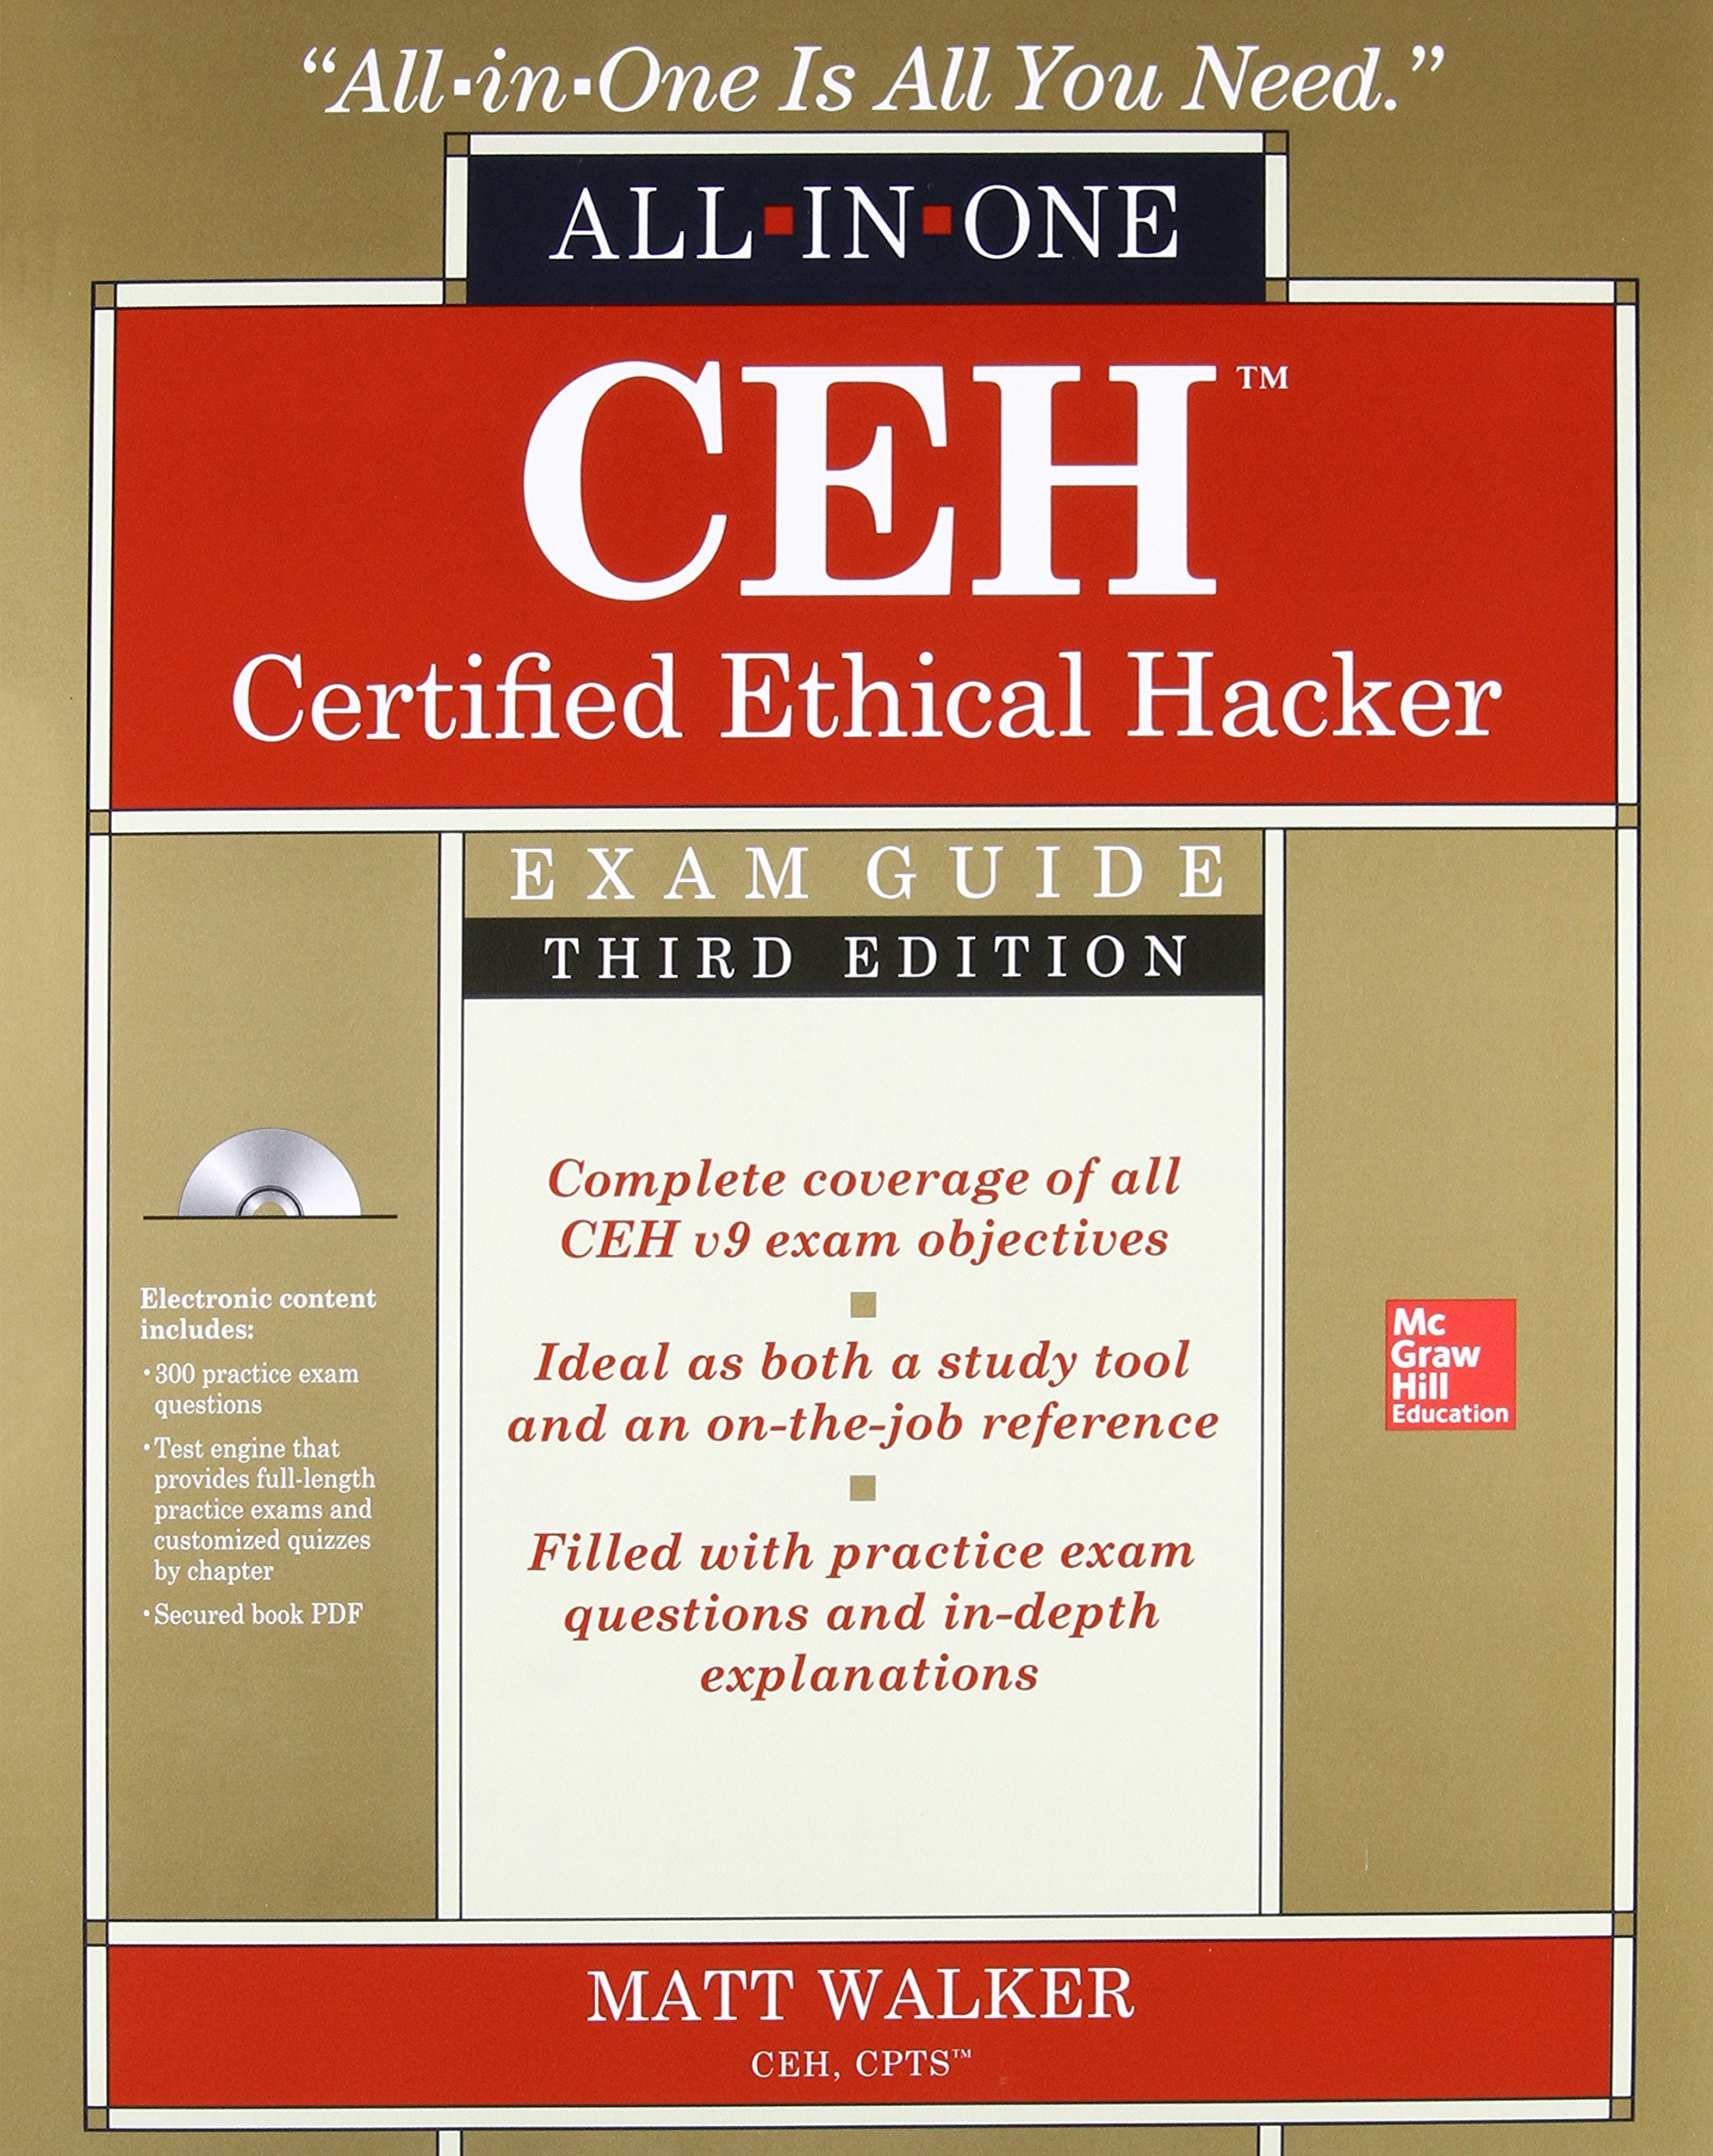 Ceh Certified Ethical Hacker All In One Exam Guide Third Edition